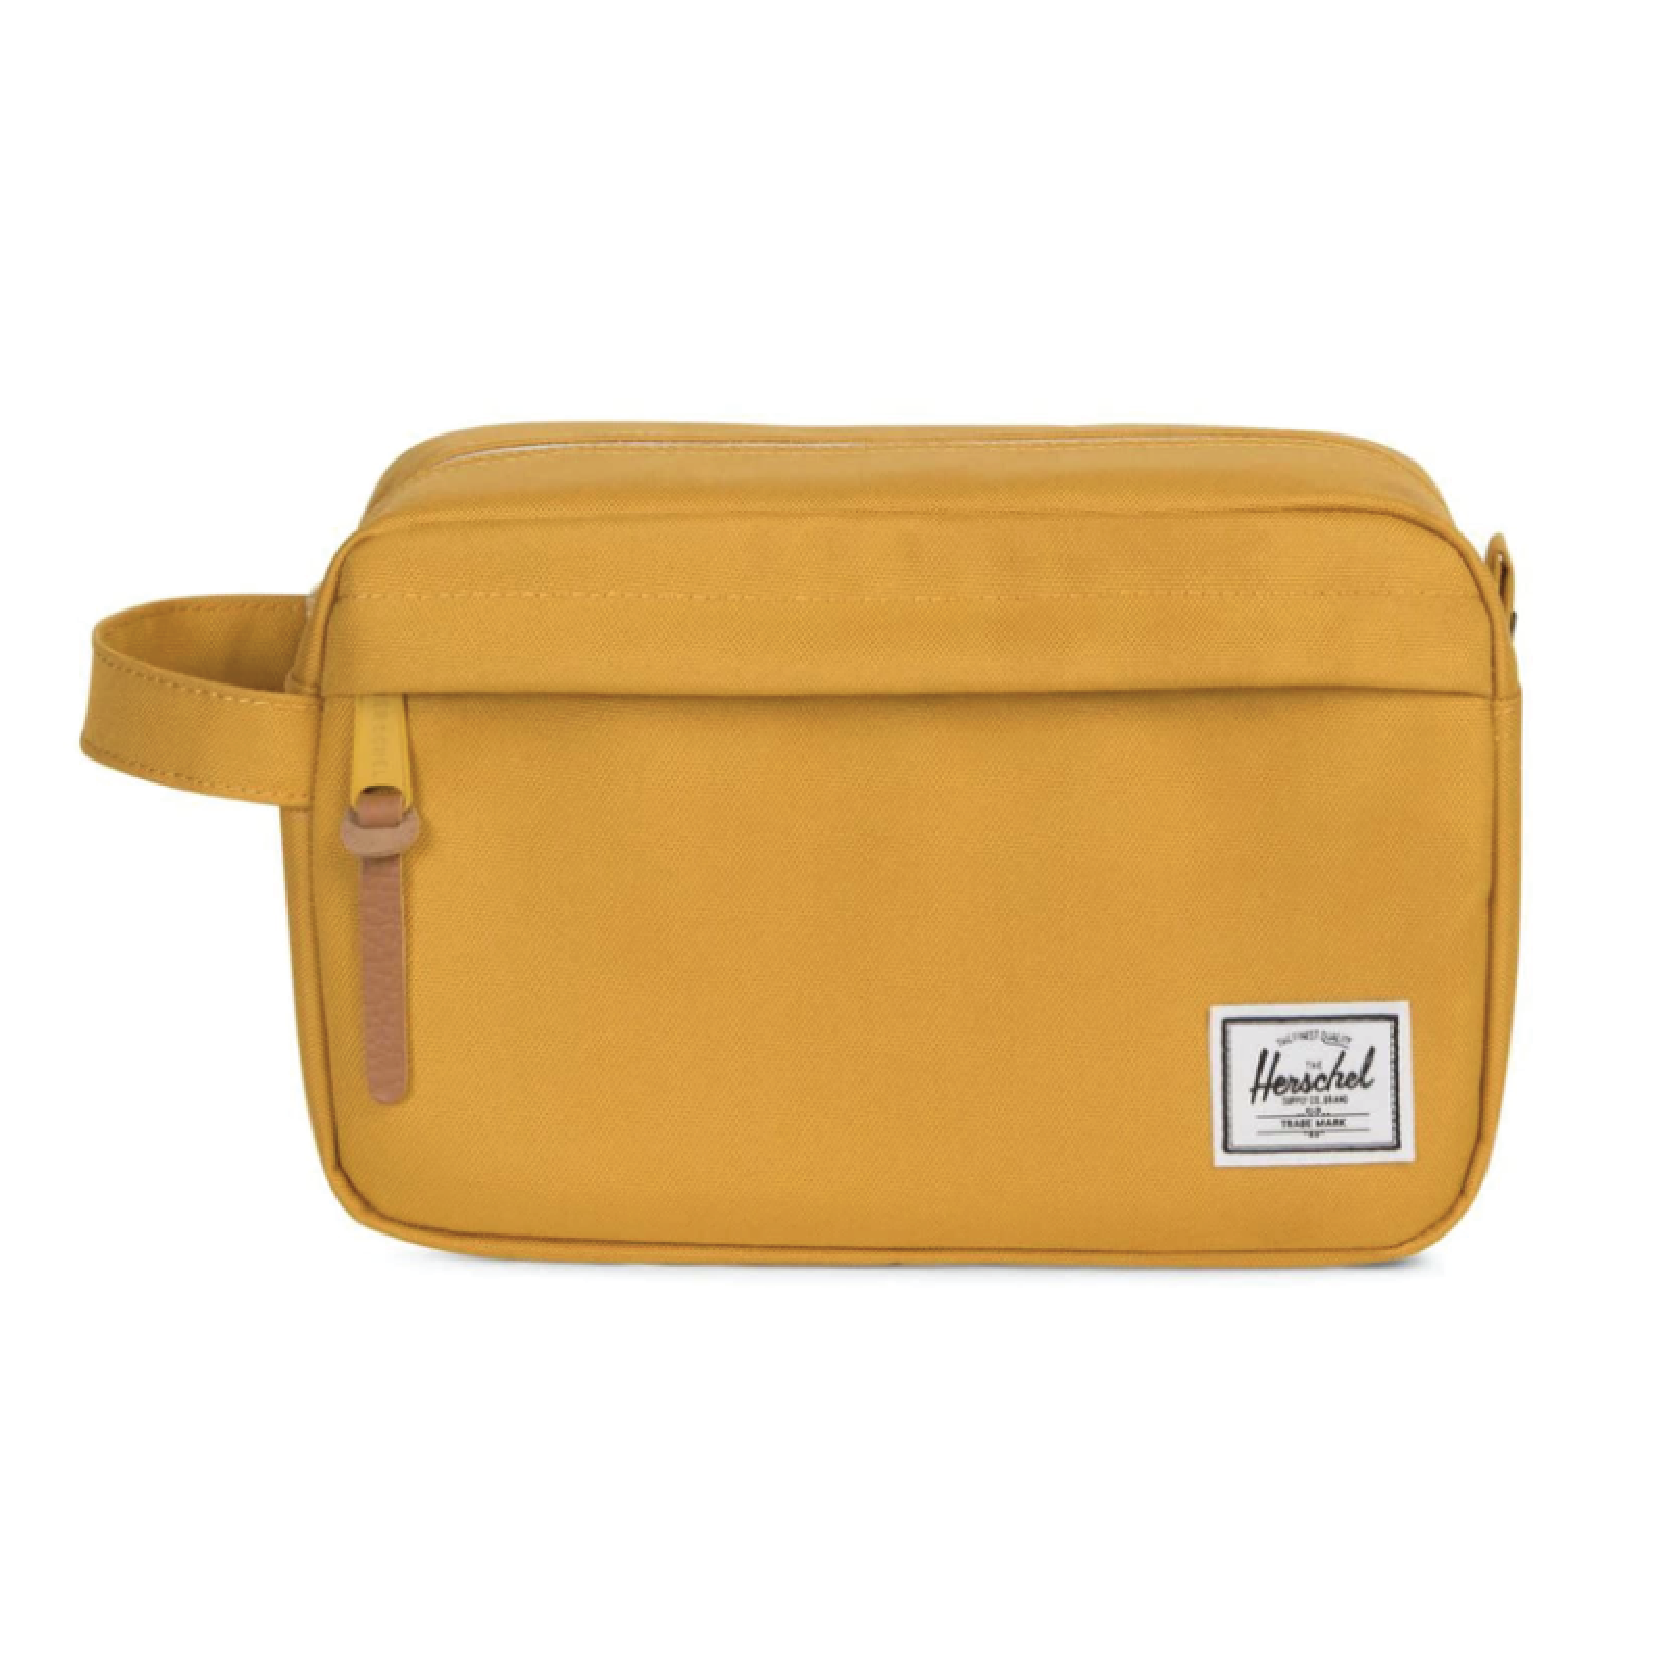 Herschel Supply Co. 'Chapter' Toiletry Case - $30 at NordstromHerschel screams modern man and this is a reasonably priced travel case that will last him forever.